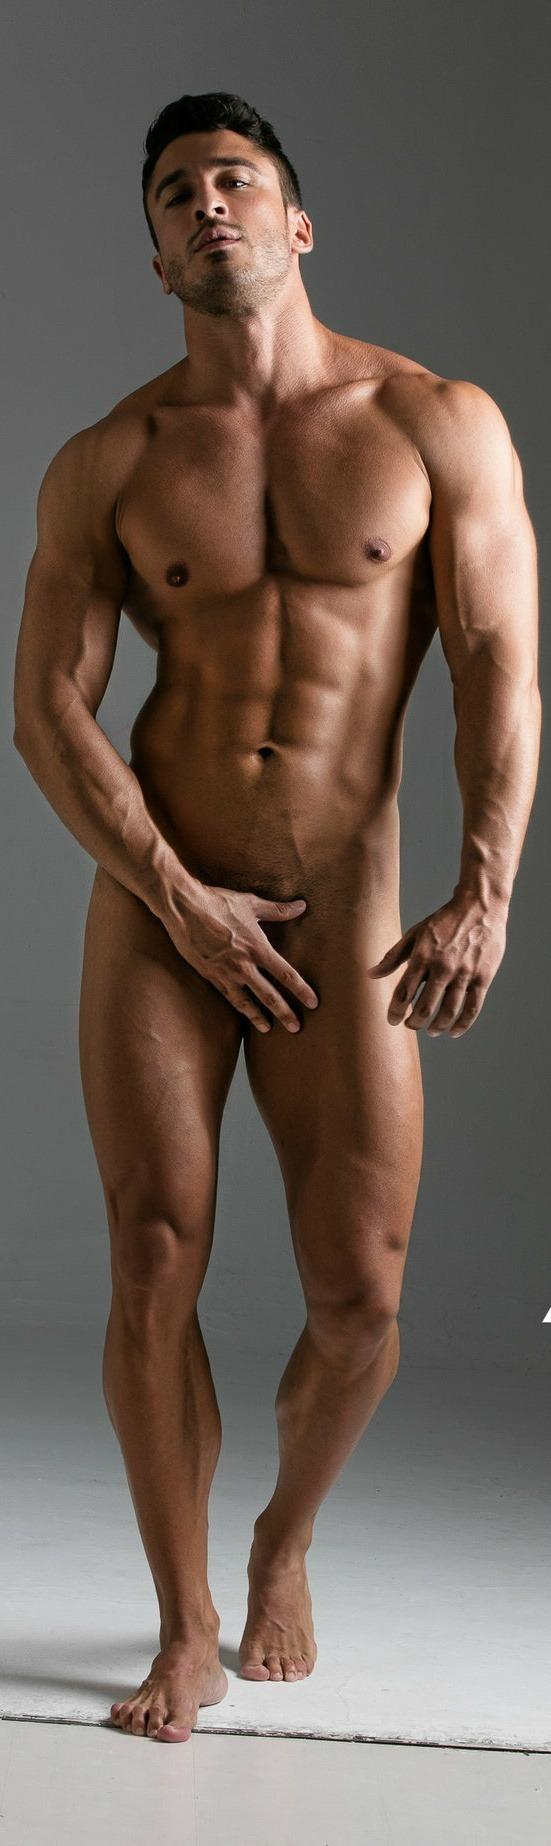 pichunter-young-relaxed-naked-hunk